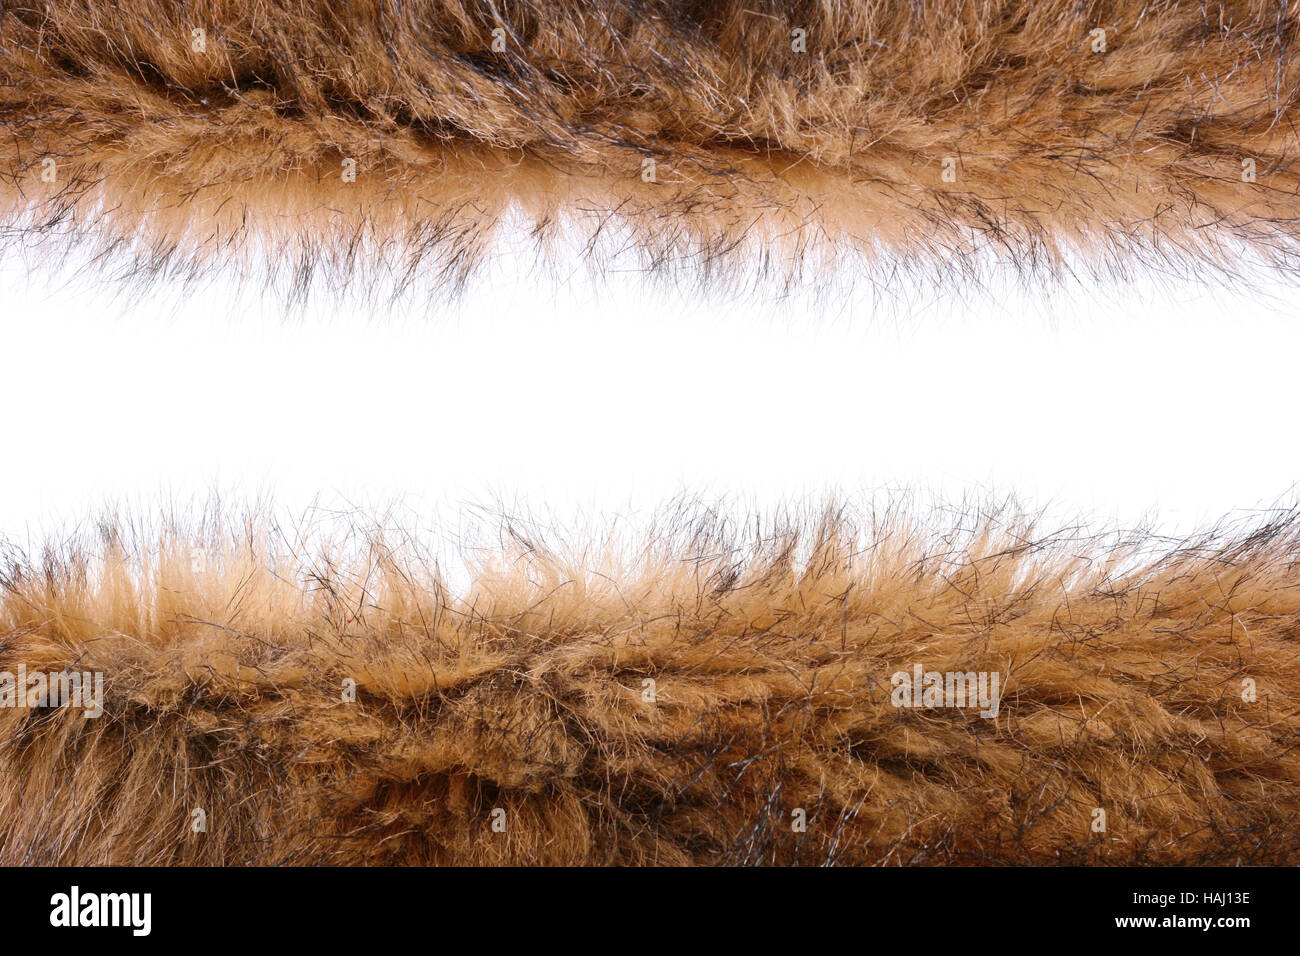 Fluffy wool texture - Stock Image